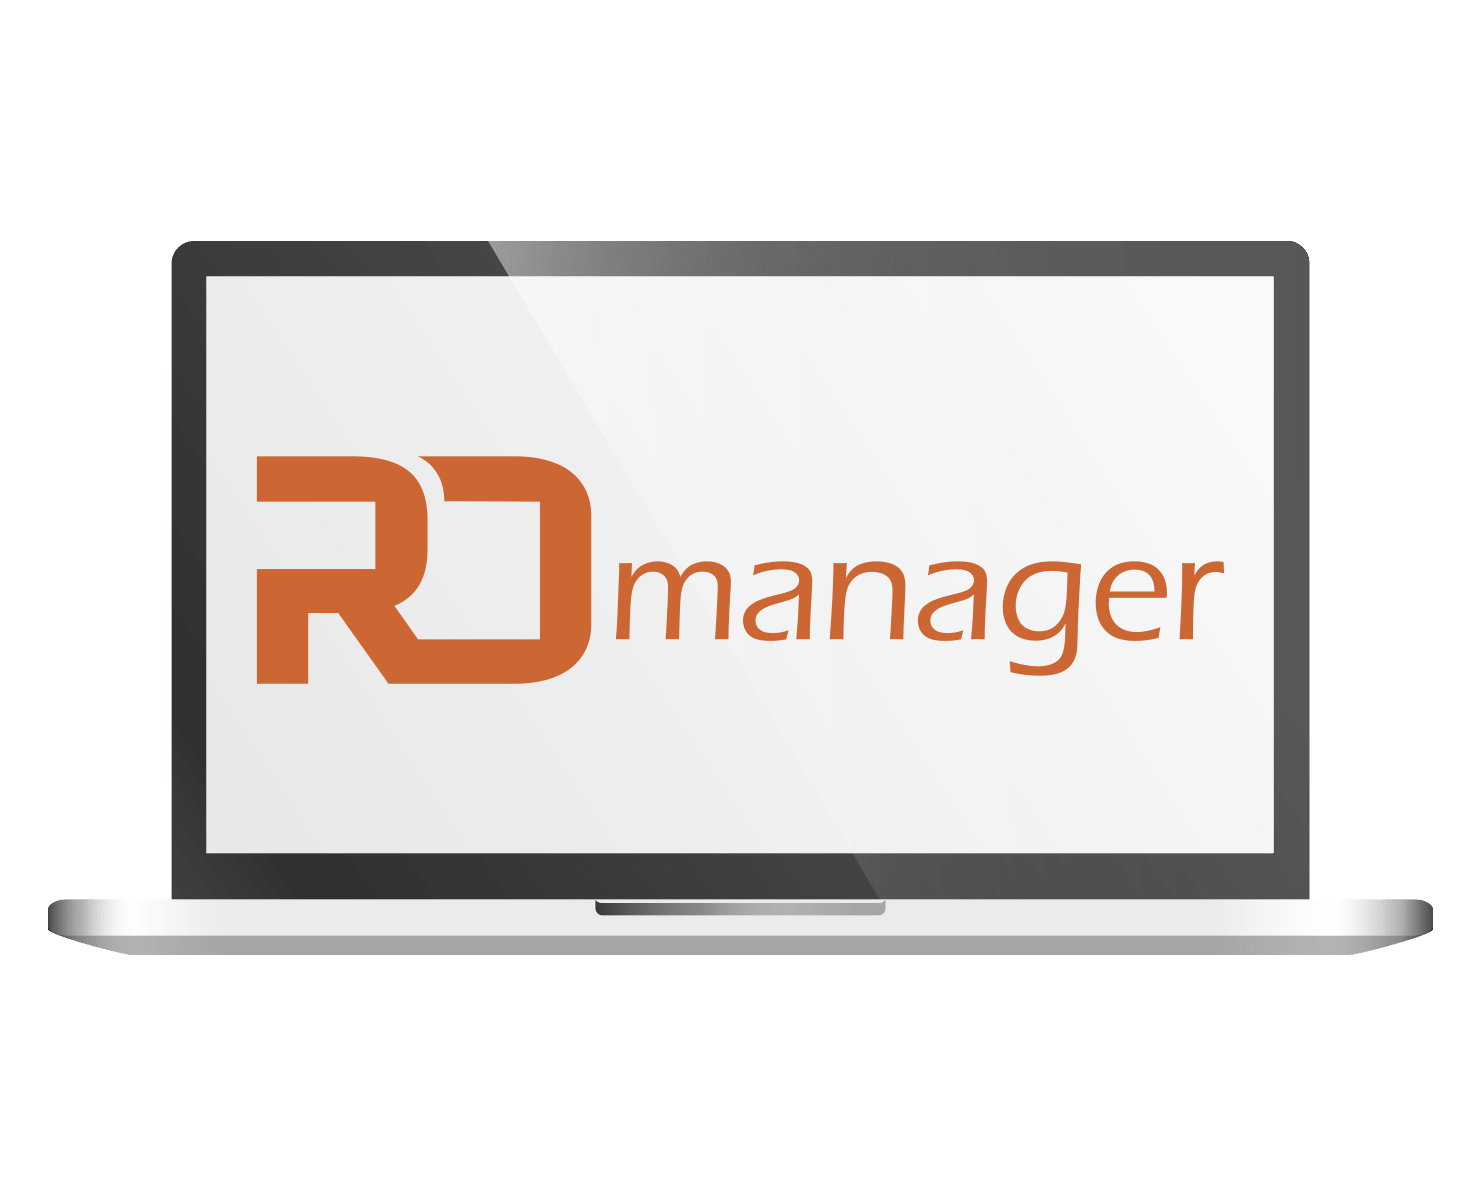 RD Manager